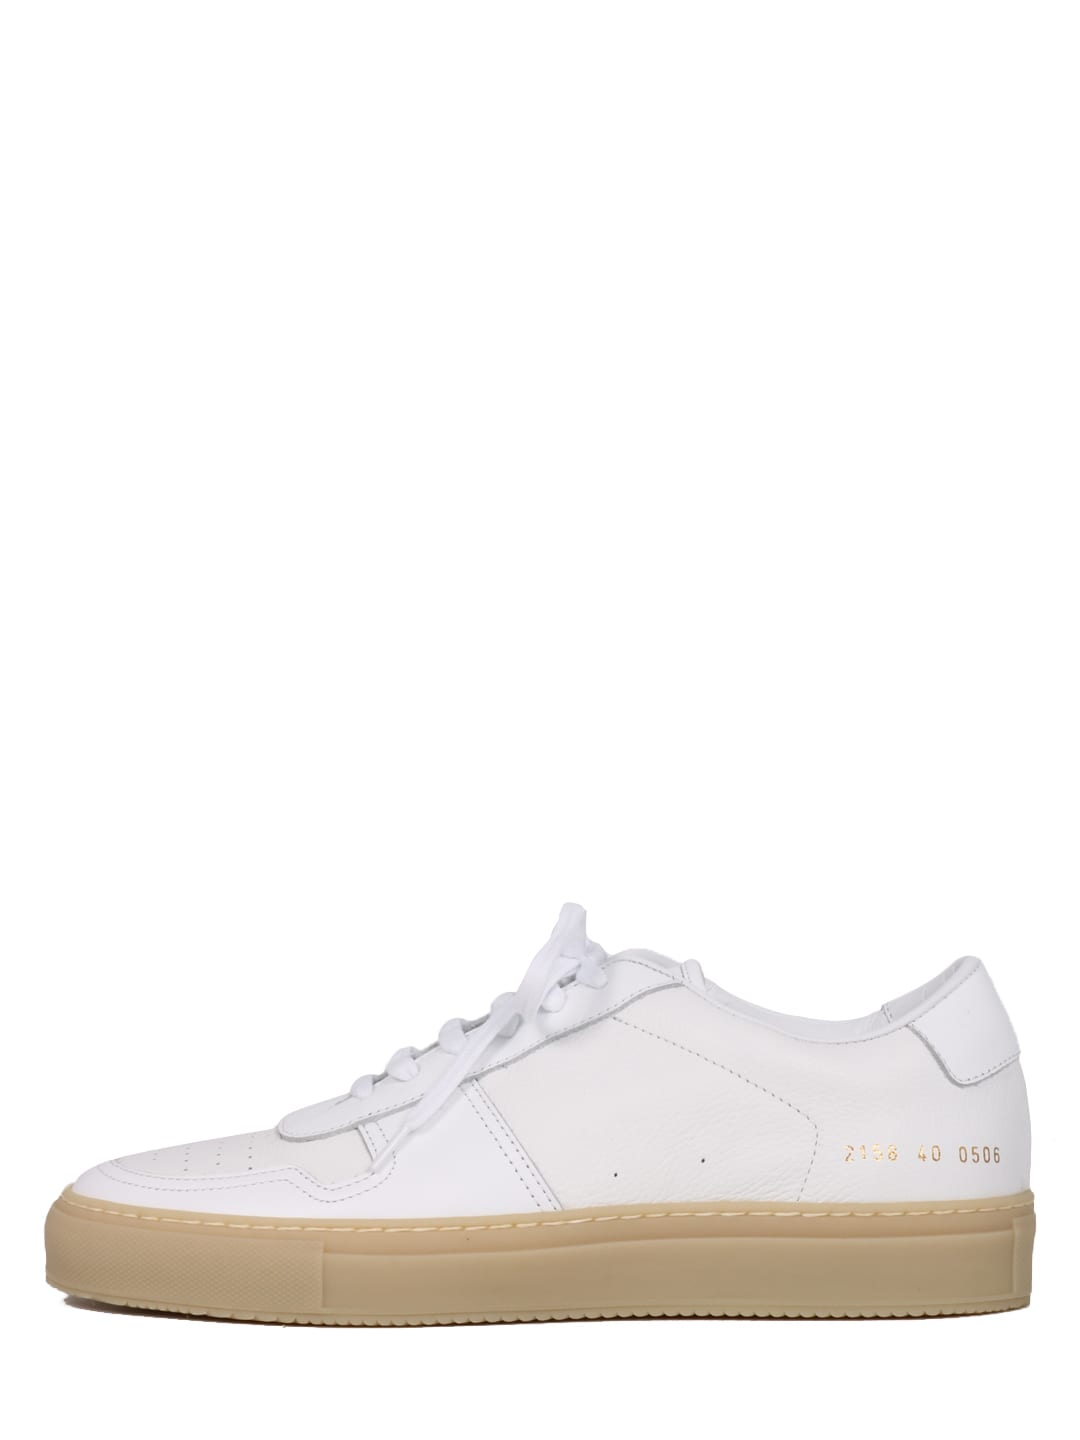 Common Projects LEATHER SNEAKERS WHITE